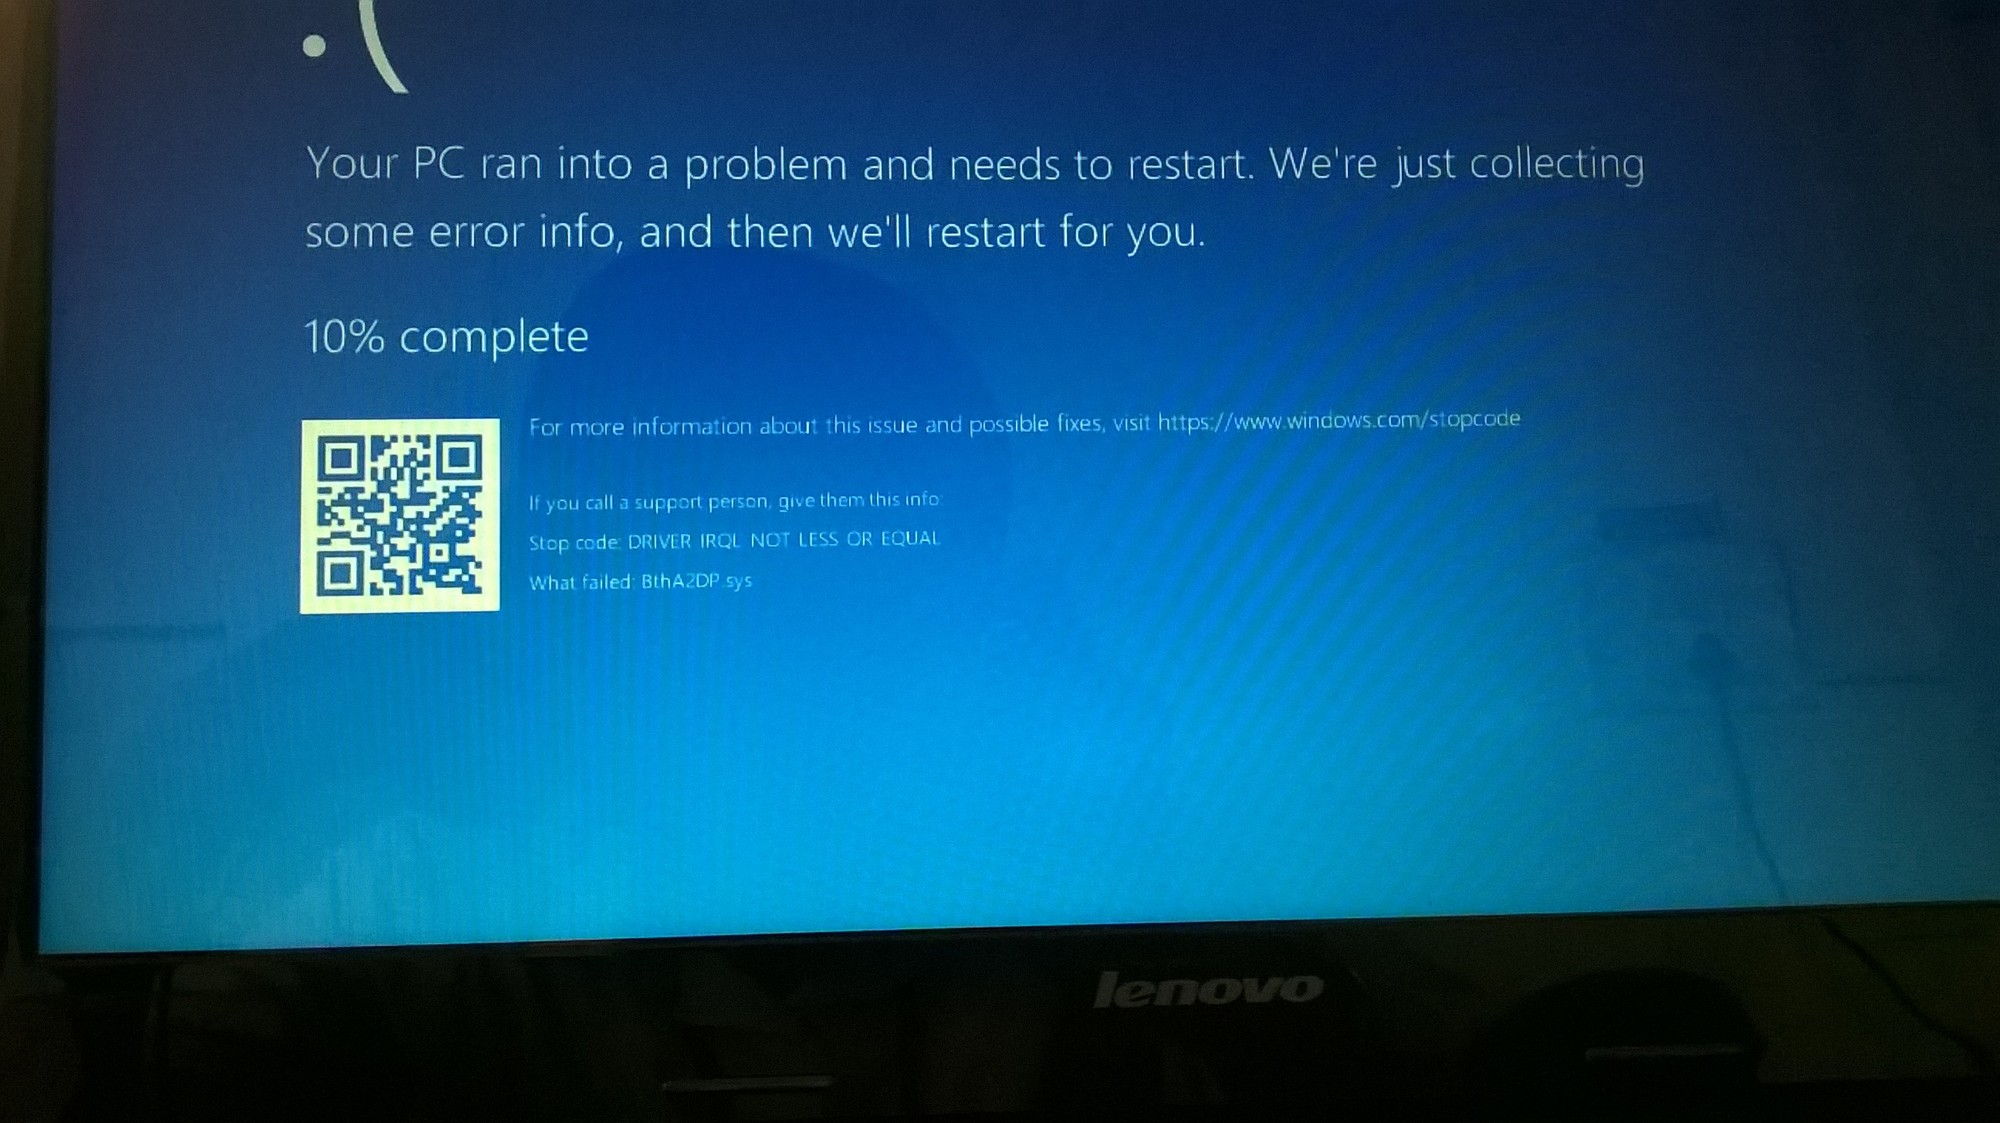 I am facing Blue screen death issue regularly? It is frustrating 55e45176-919e-4262-9afa-d8f3cfebab3e?upload=true.jpg